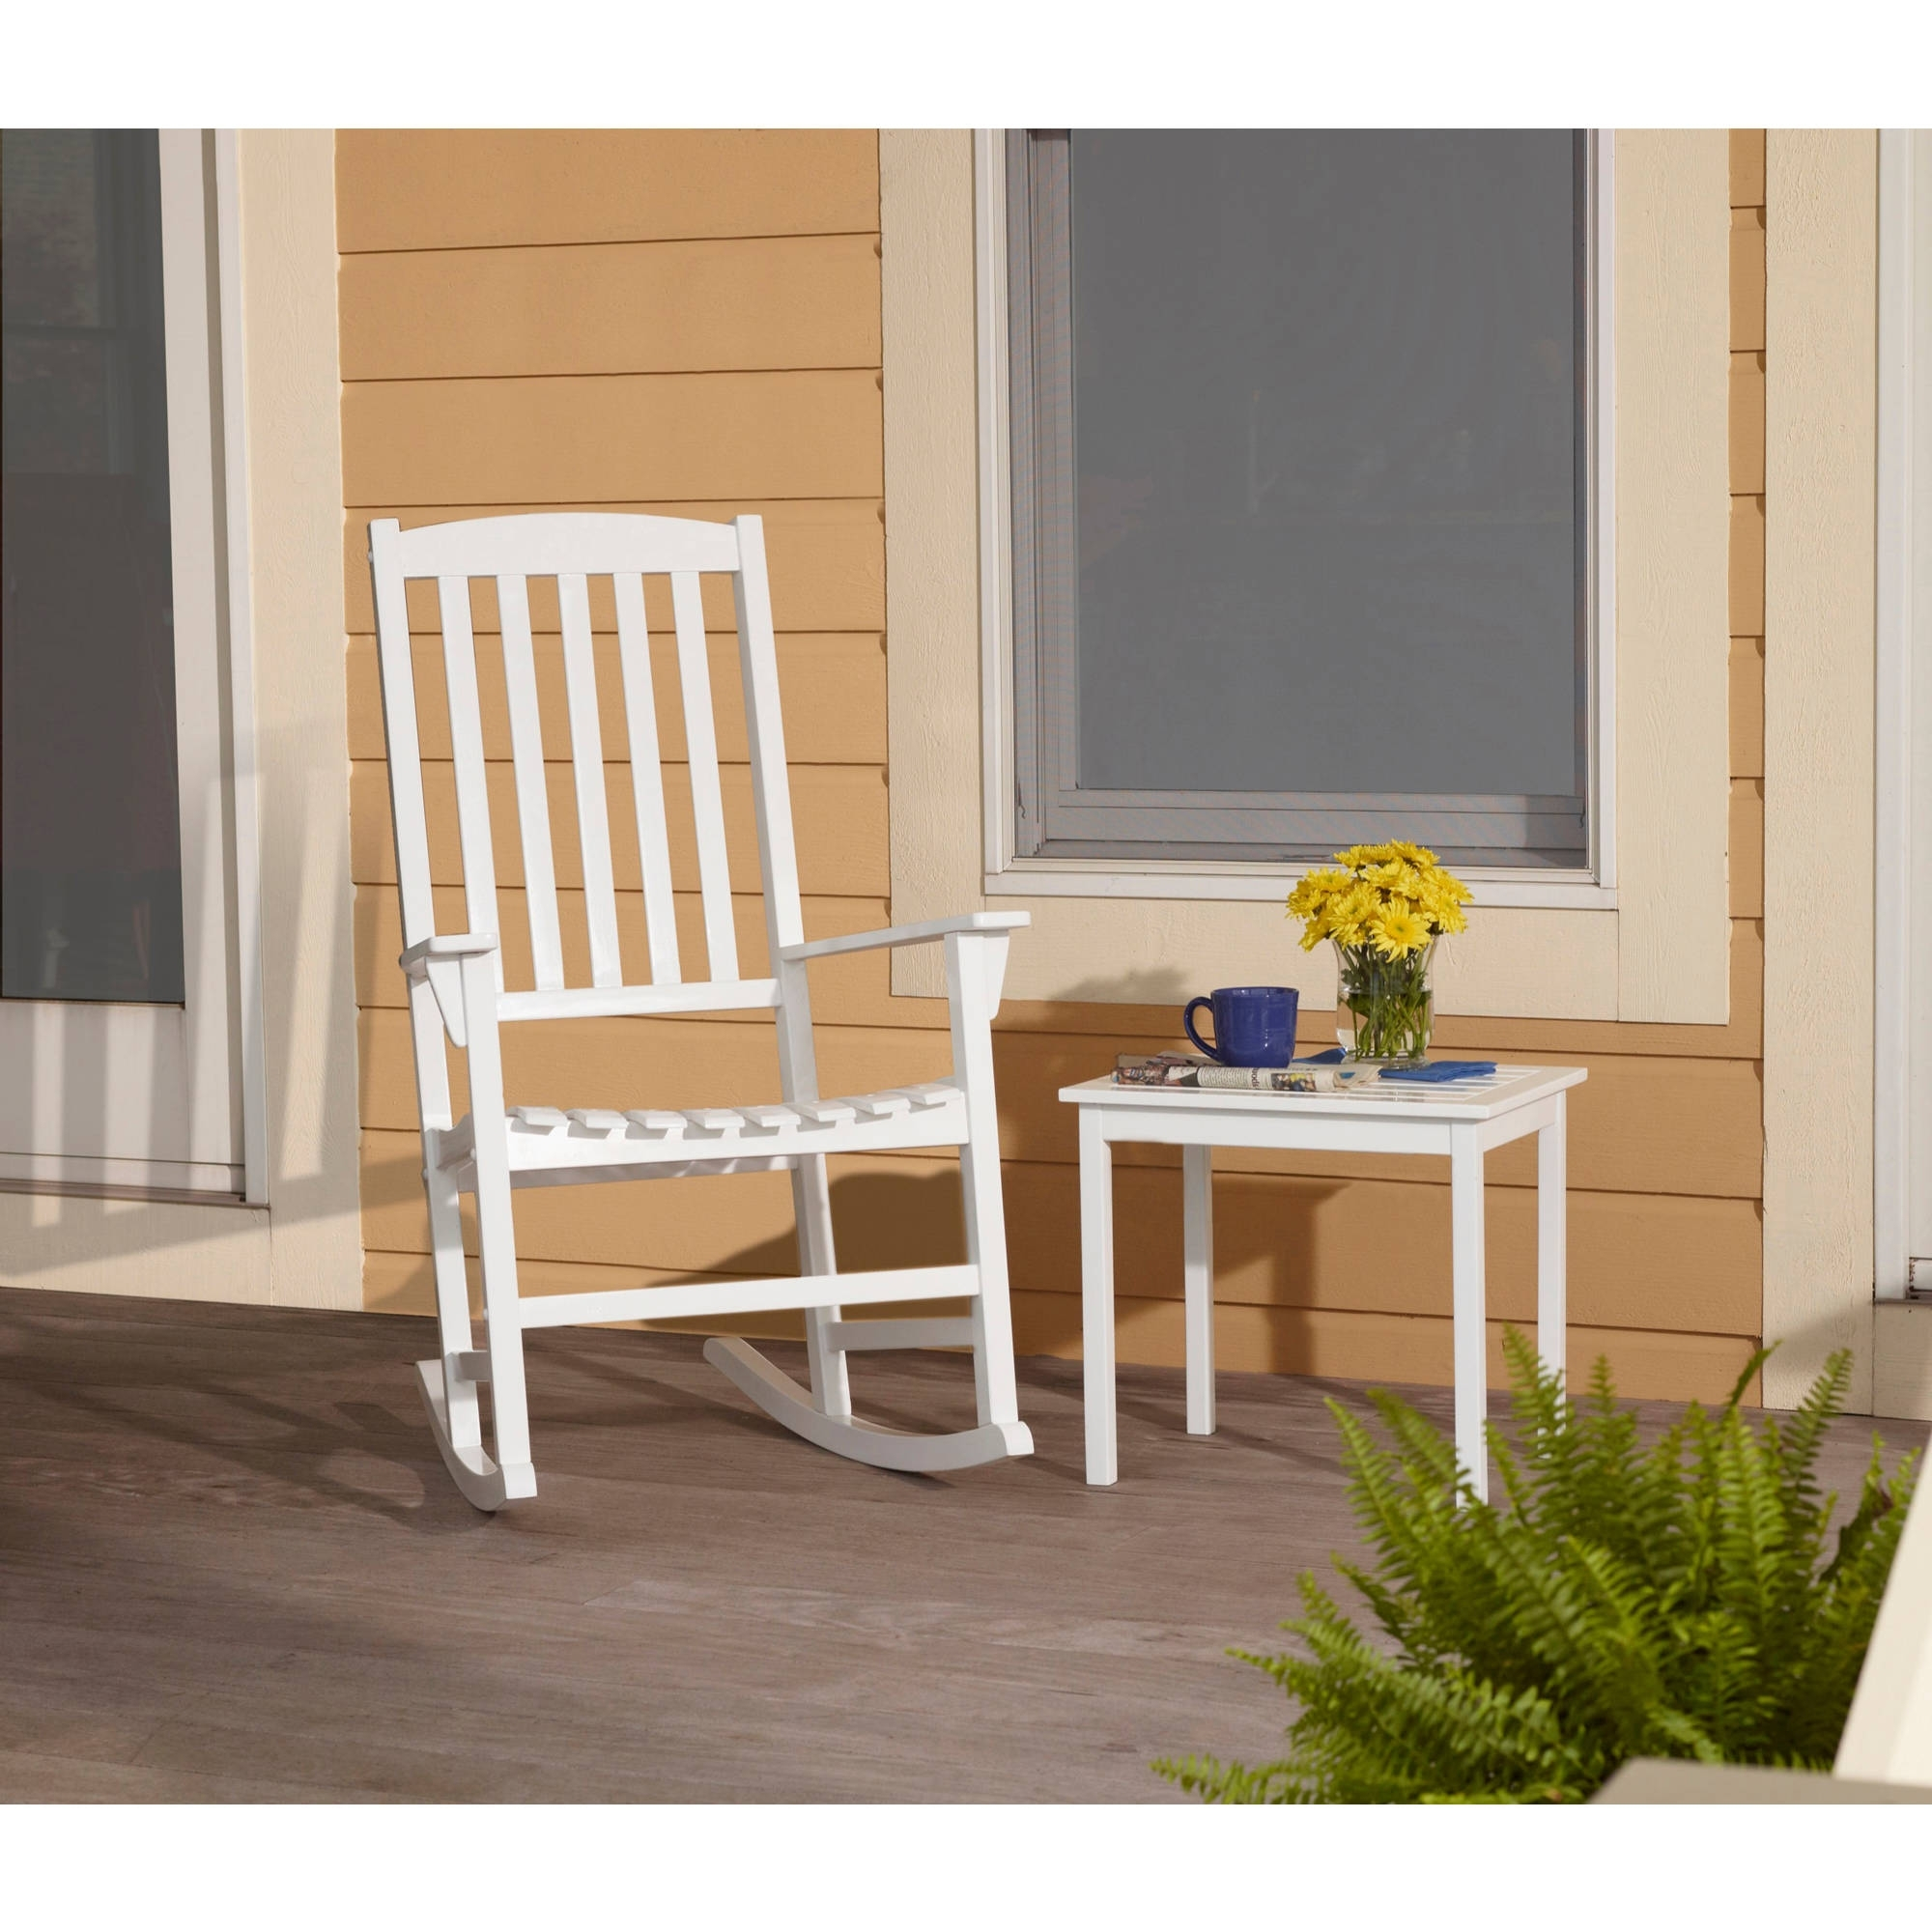 Rocking Chairs At Walmart Intended For Recent Mainstays Outdoor Rocking Chair, White – Walmart (View 8 of 15)